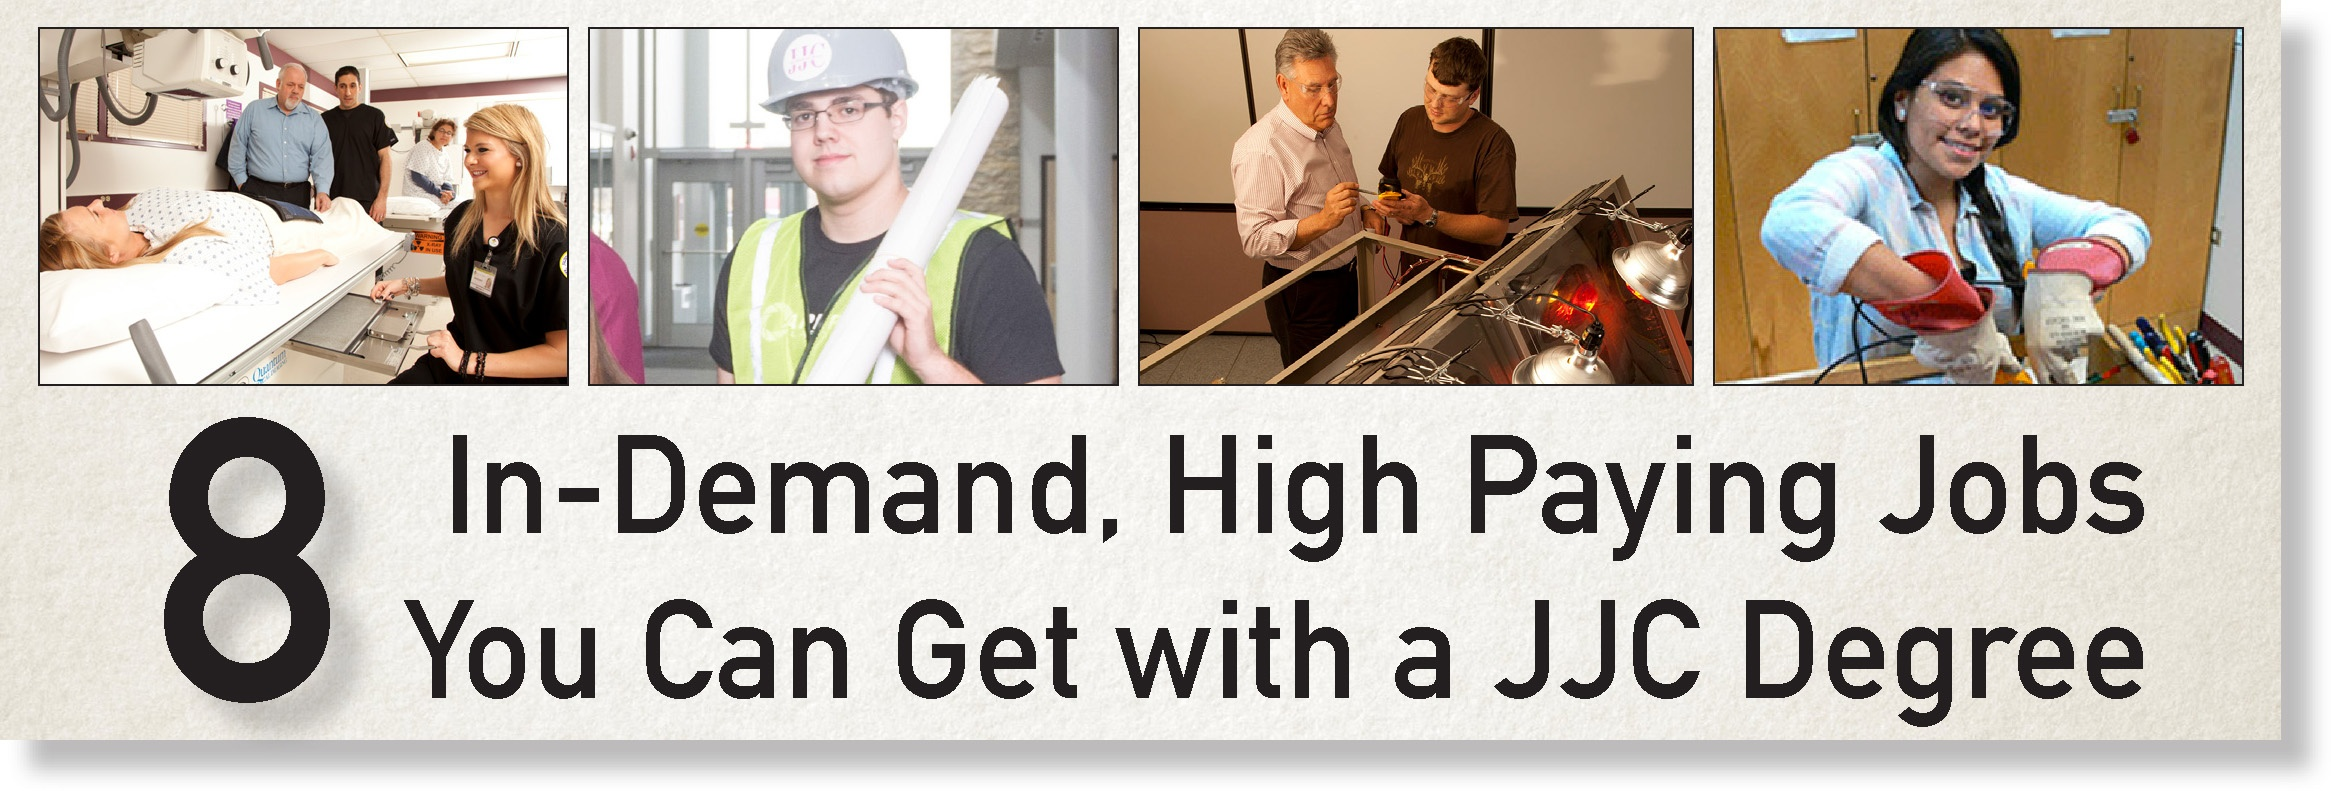 eight in-demand, high paying jobs you can get with a JJC degree banner